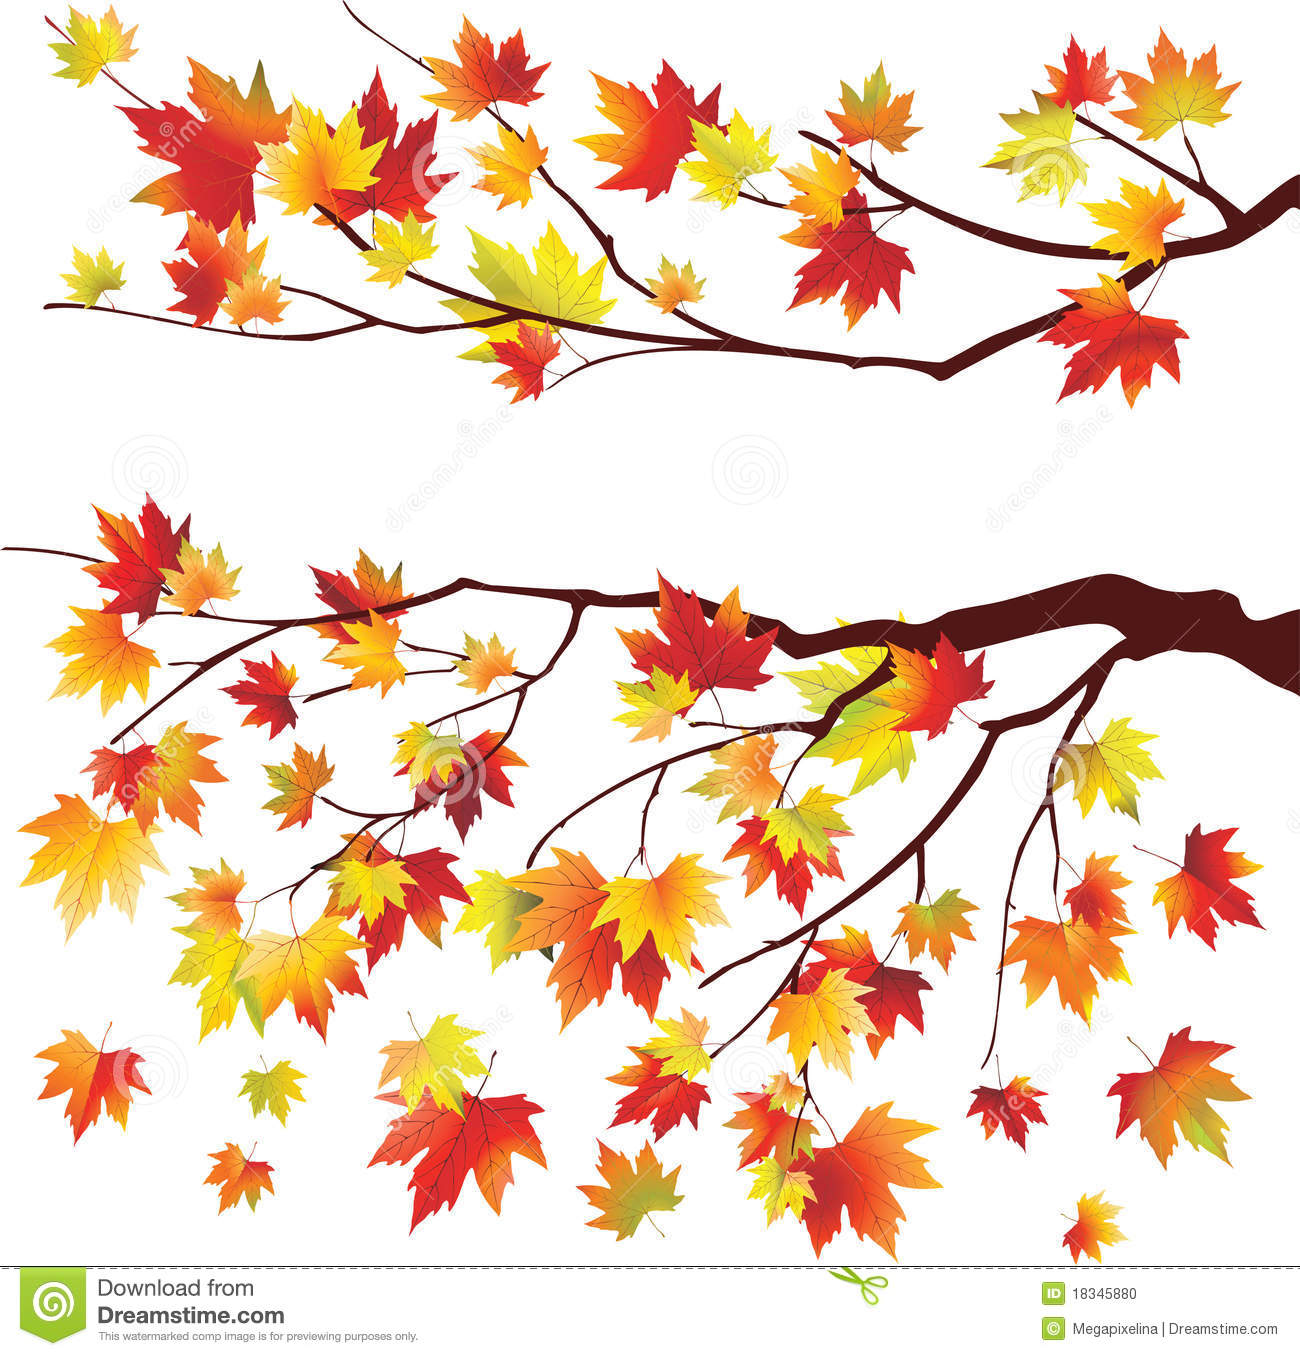 Hedgehog clipart hiran Maple branches branches on Clipart